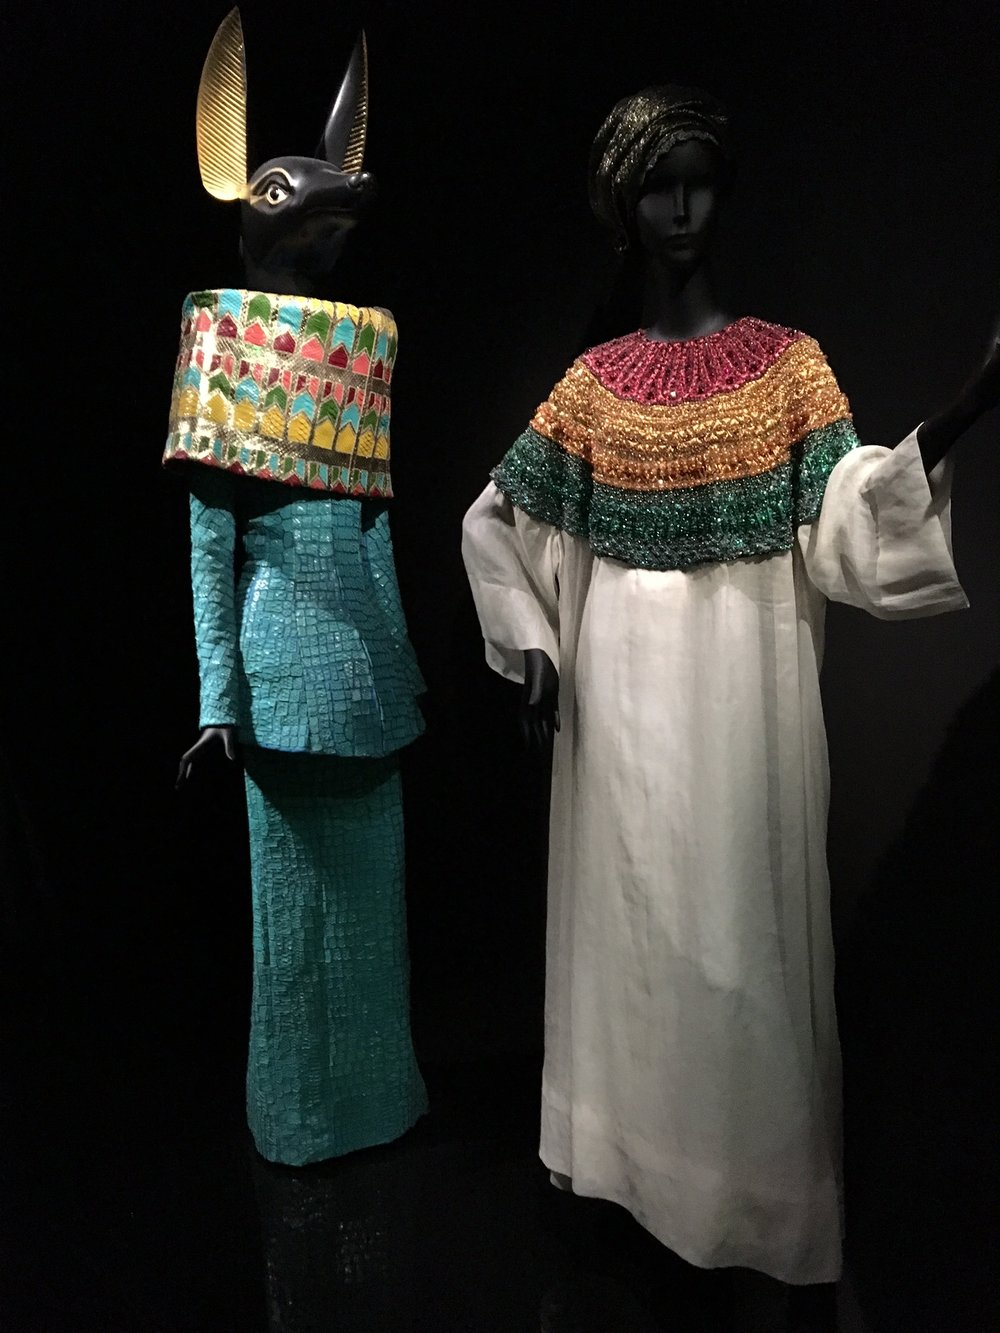 John Galliano stand-out creations are exhibited together with African and Ancient Egypt artifacts as sources of inspiration.